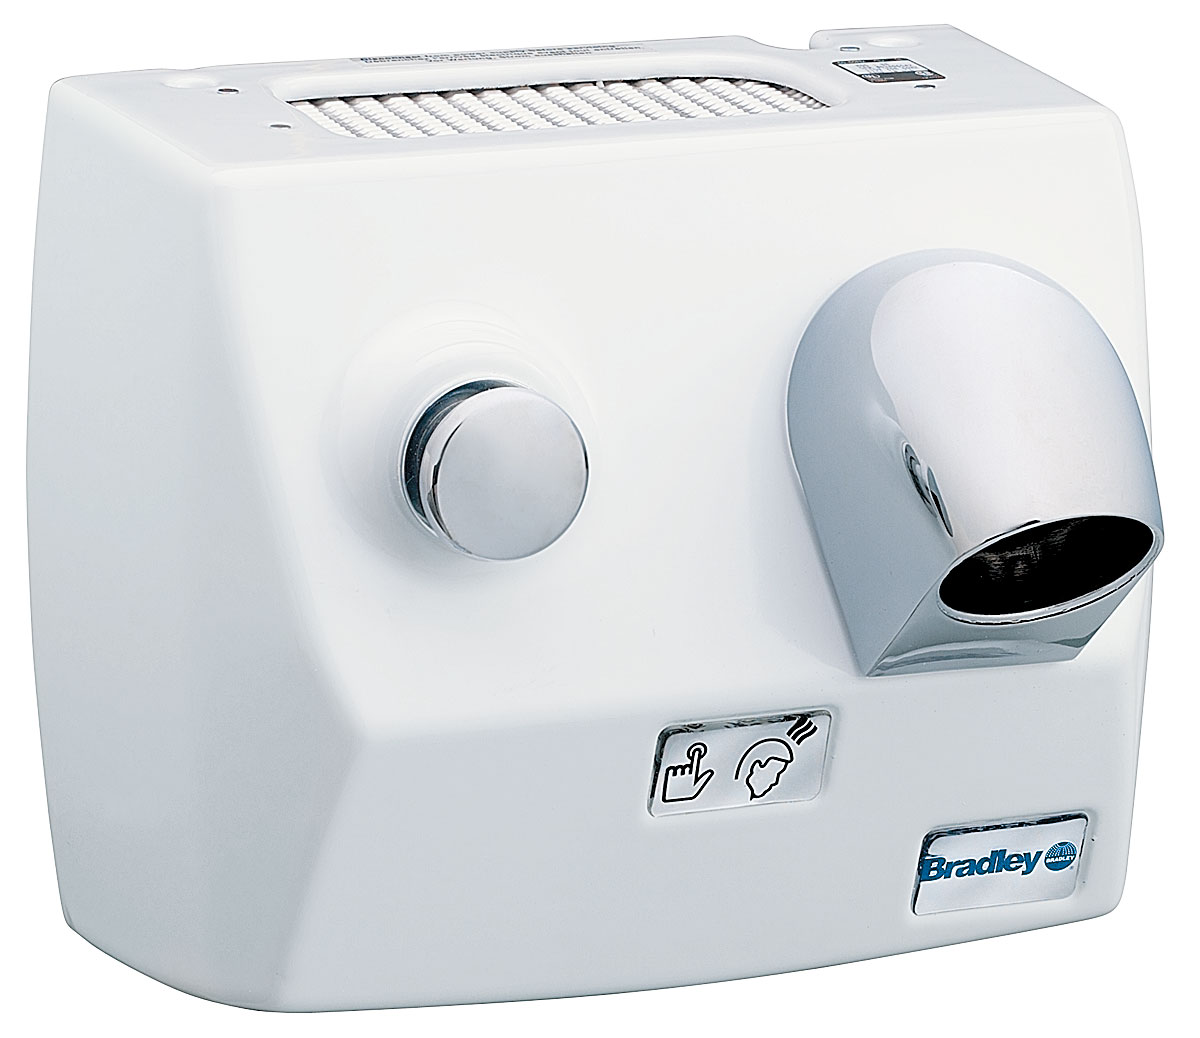 Surface Mounted Hand/Hair Dryer - Bradley Corporation